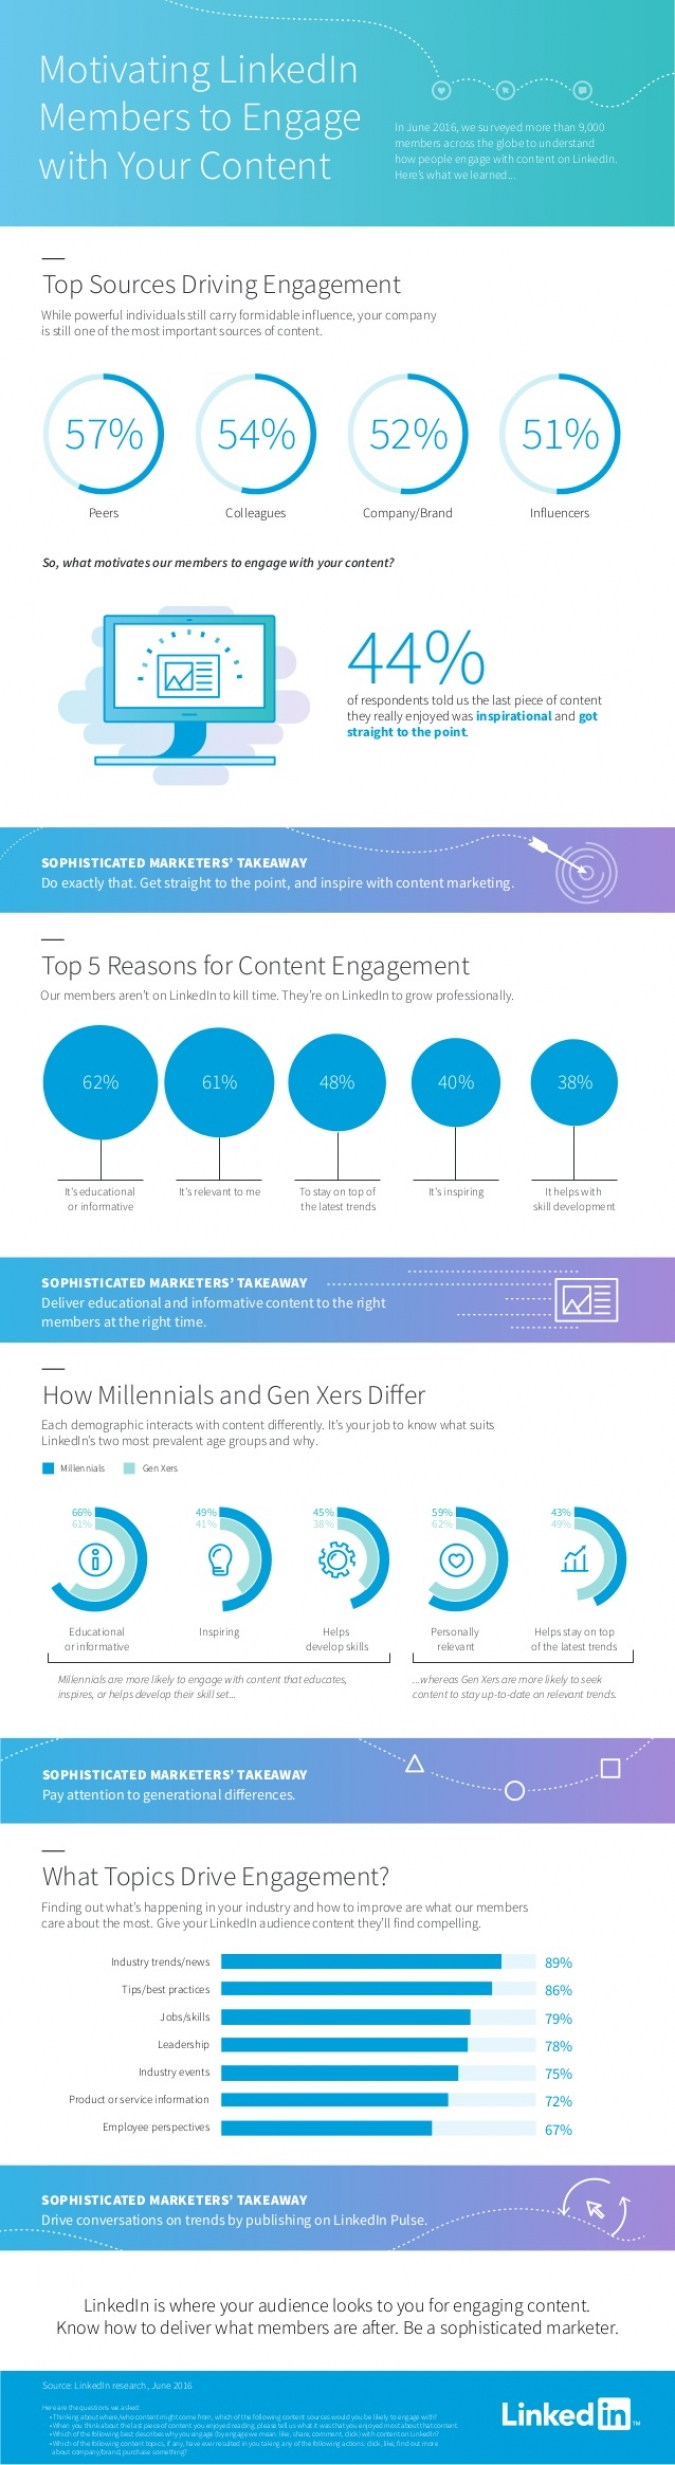 Content Marketing für B2B-Unternehmen via LinkedIn – Top Social Media B2B-Tipps [Infografik]